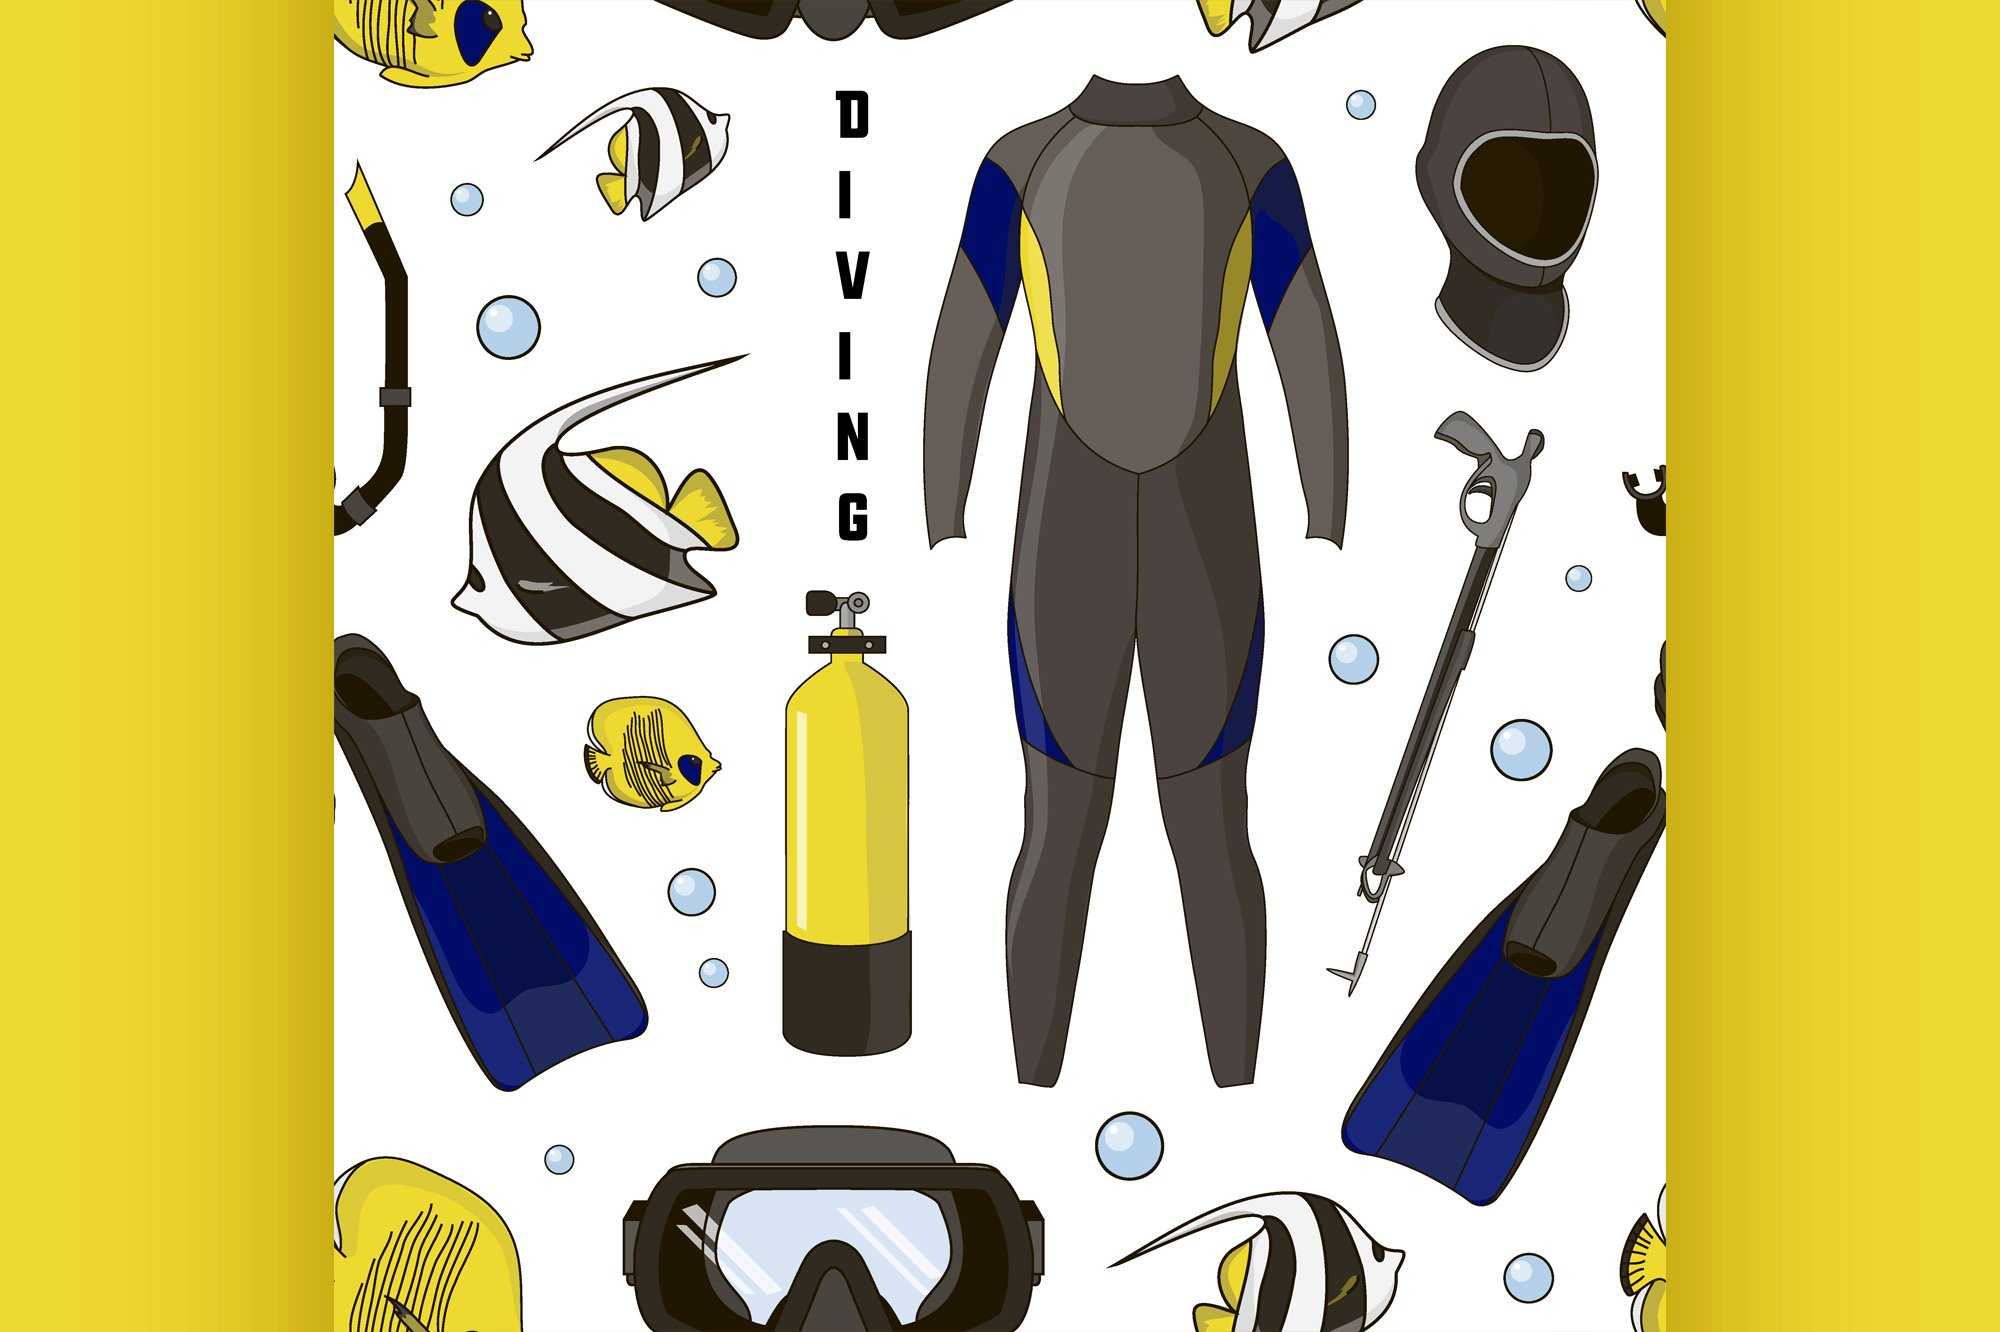 Diving equipment pattern example image 1